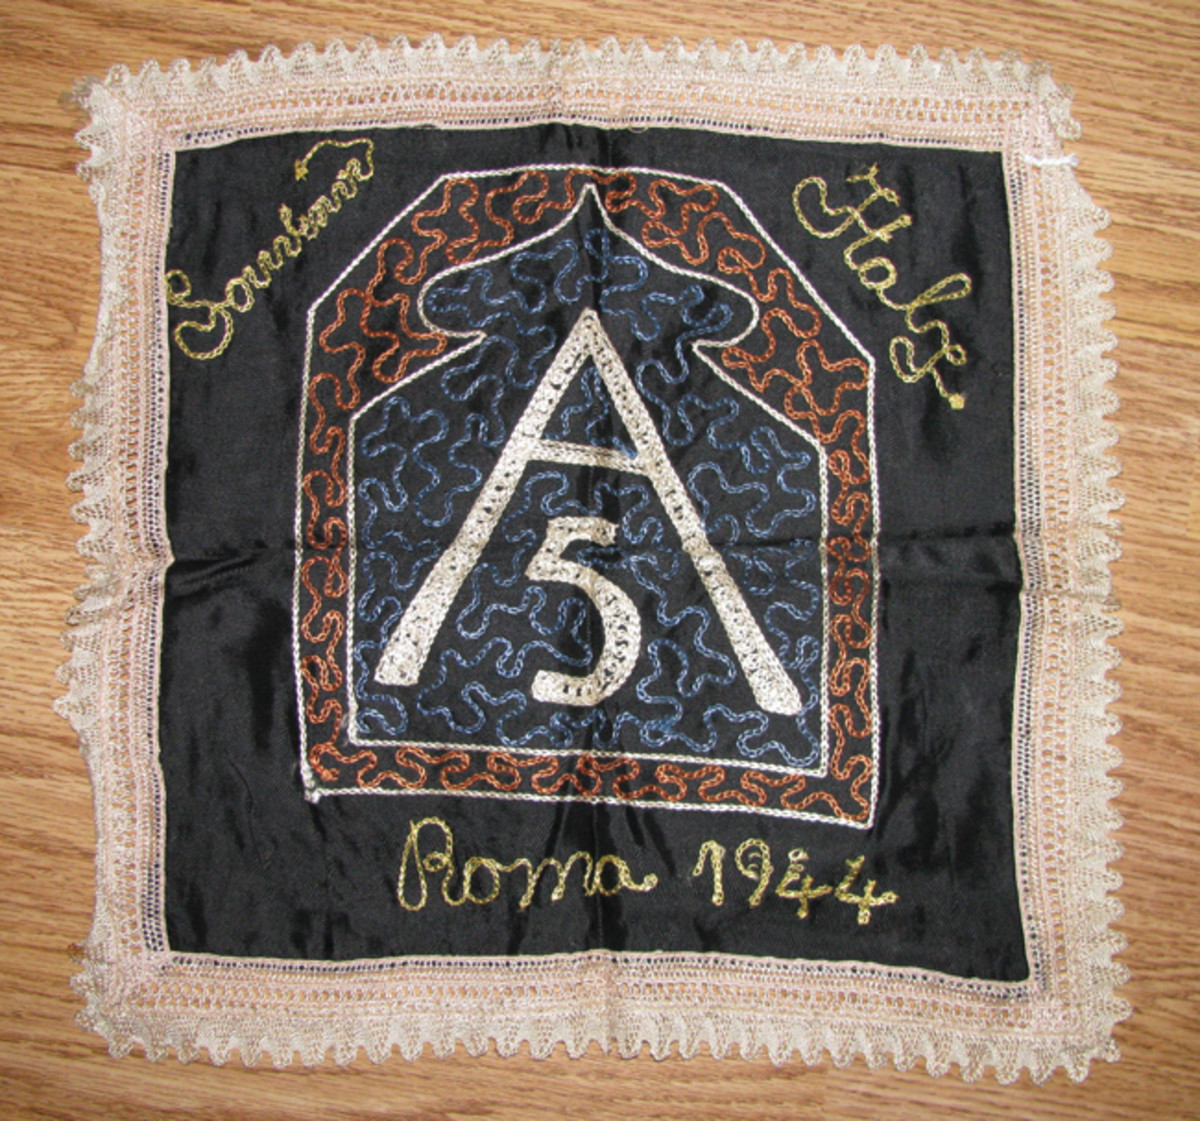 The Second World War created an explosion of G.I. souvenirs, such as this 5th Army cover from Italy.